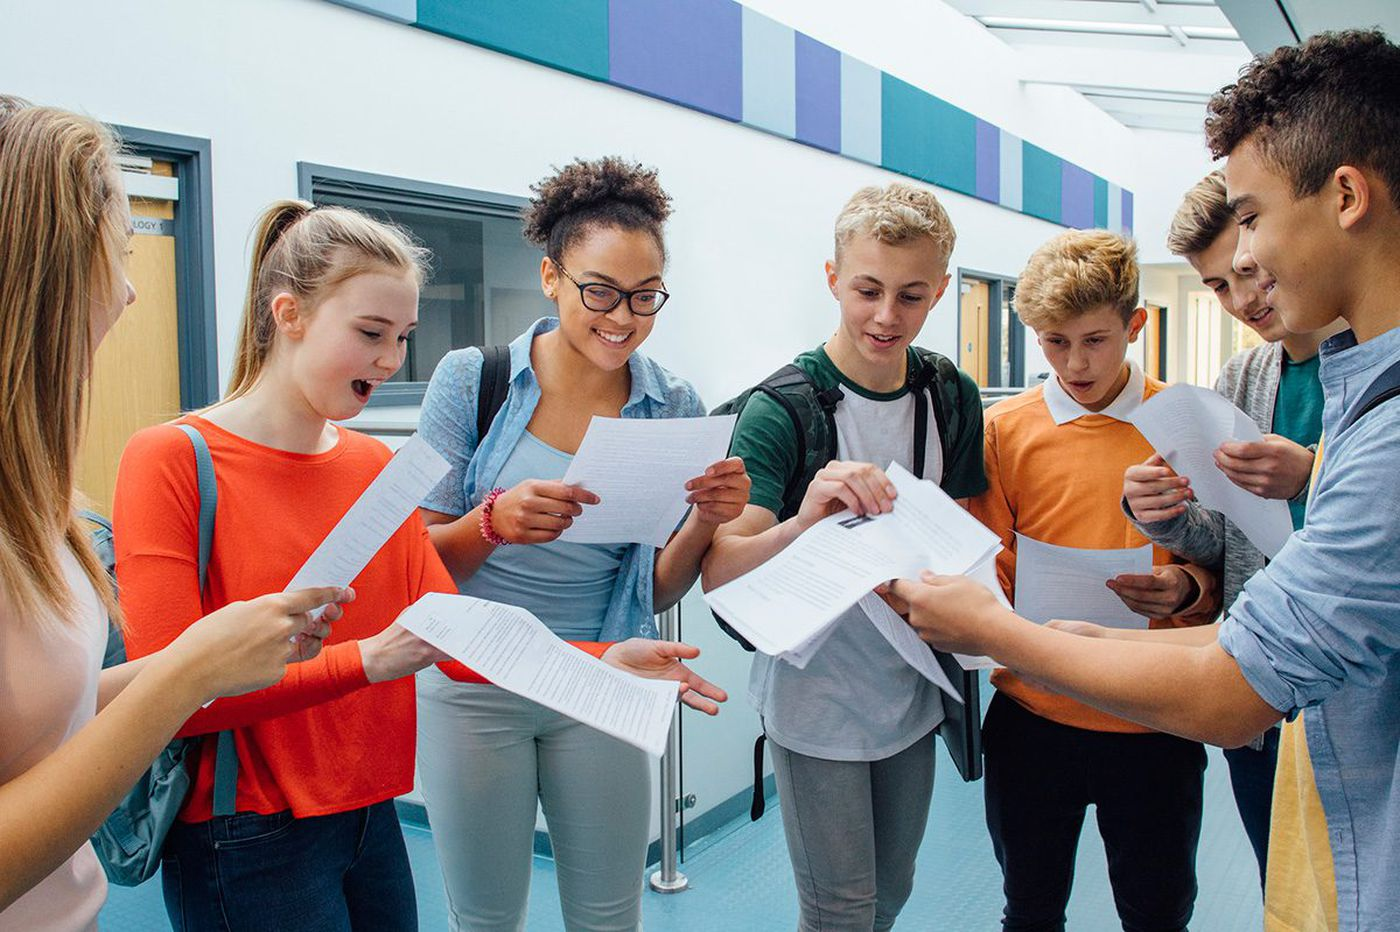 Good health and good grades go hand-in-hand